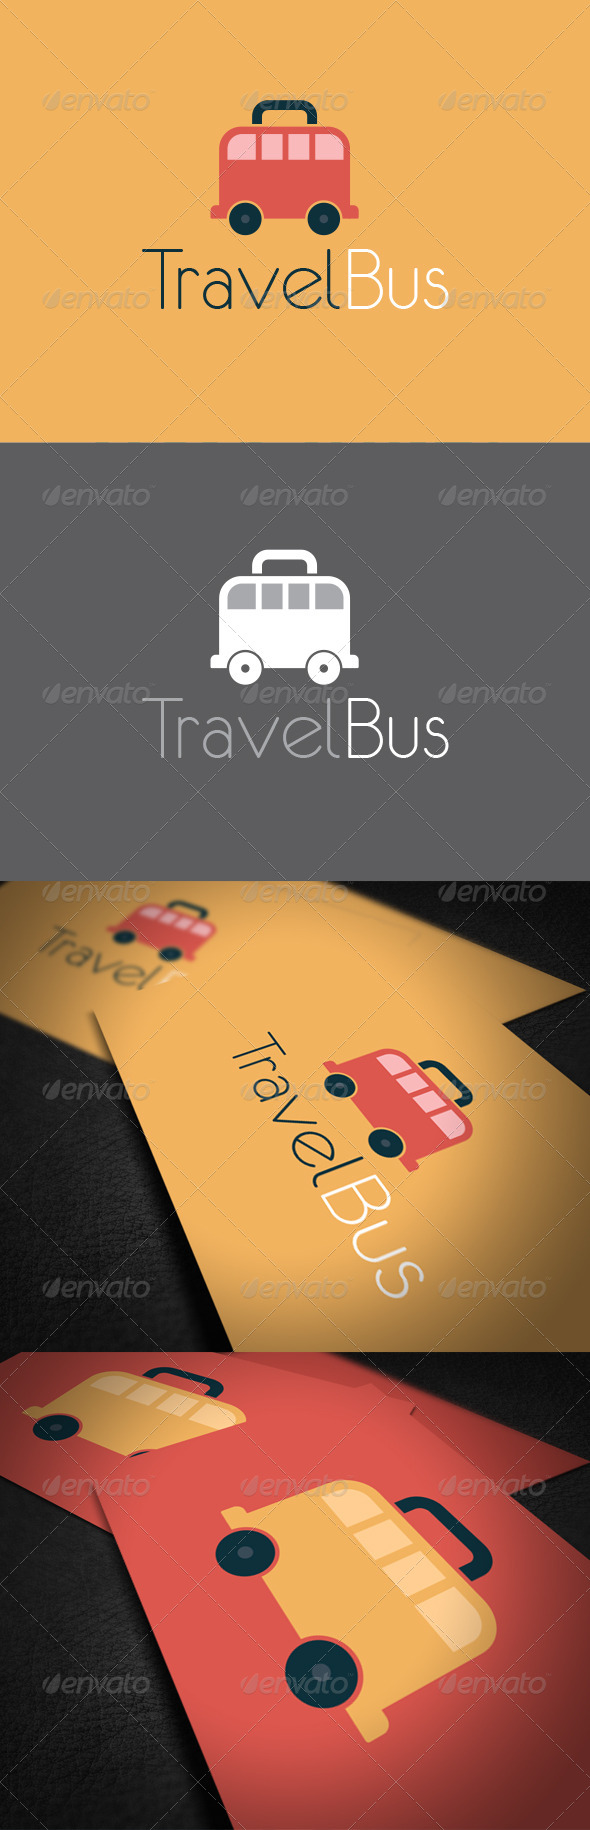 Travel Bus Logo Template - Vector Abstract